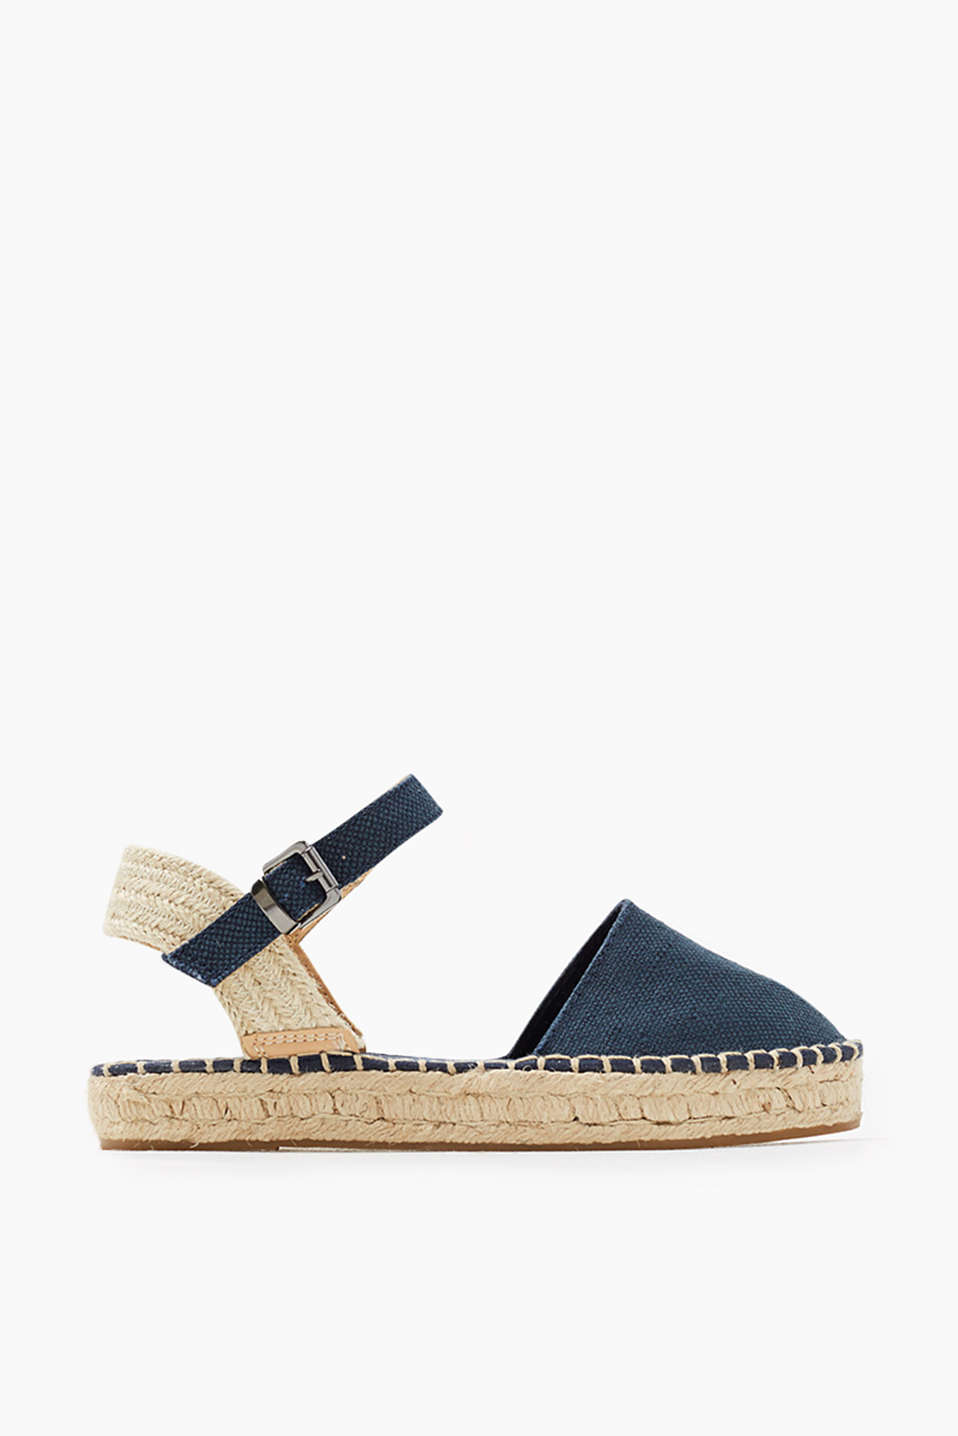 Espadrille-style sandals with a rubberised bast sole